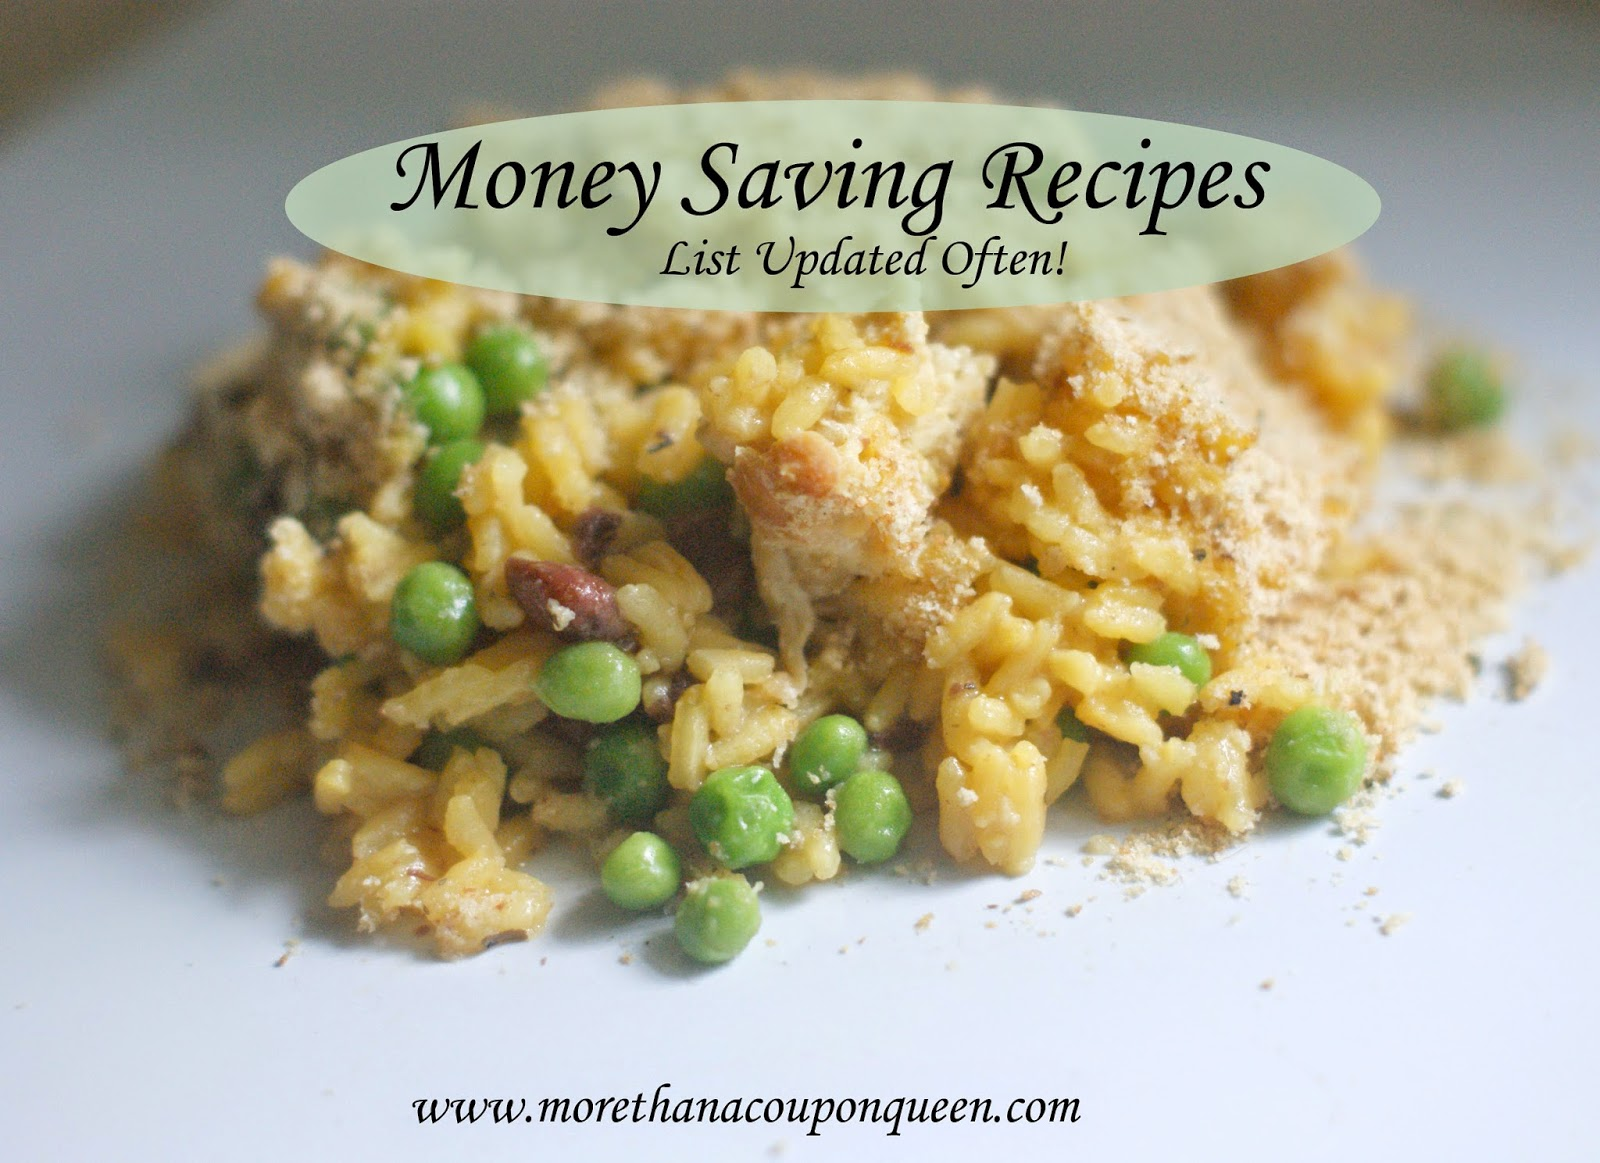 Money Saving Recipes - List Updated Often, Enjoy meals without breaking the bank